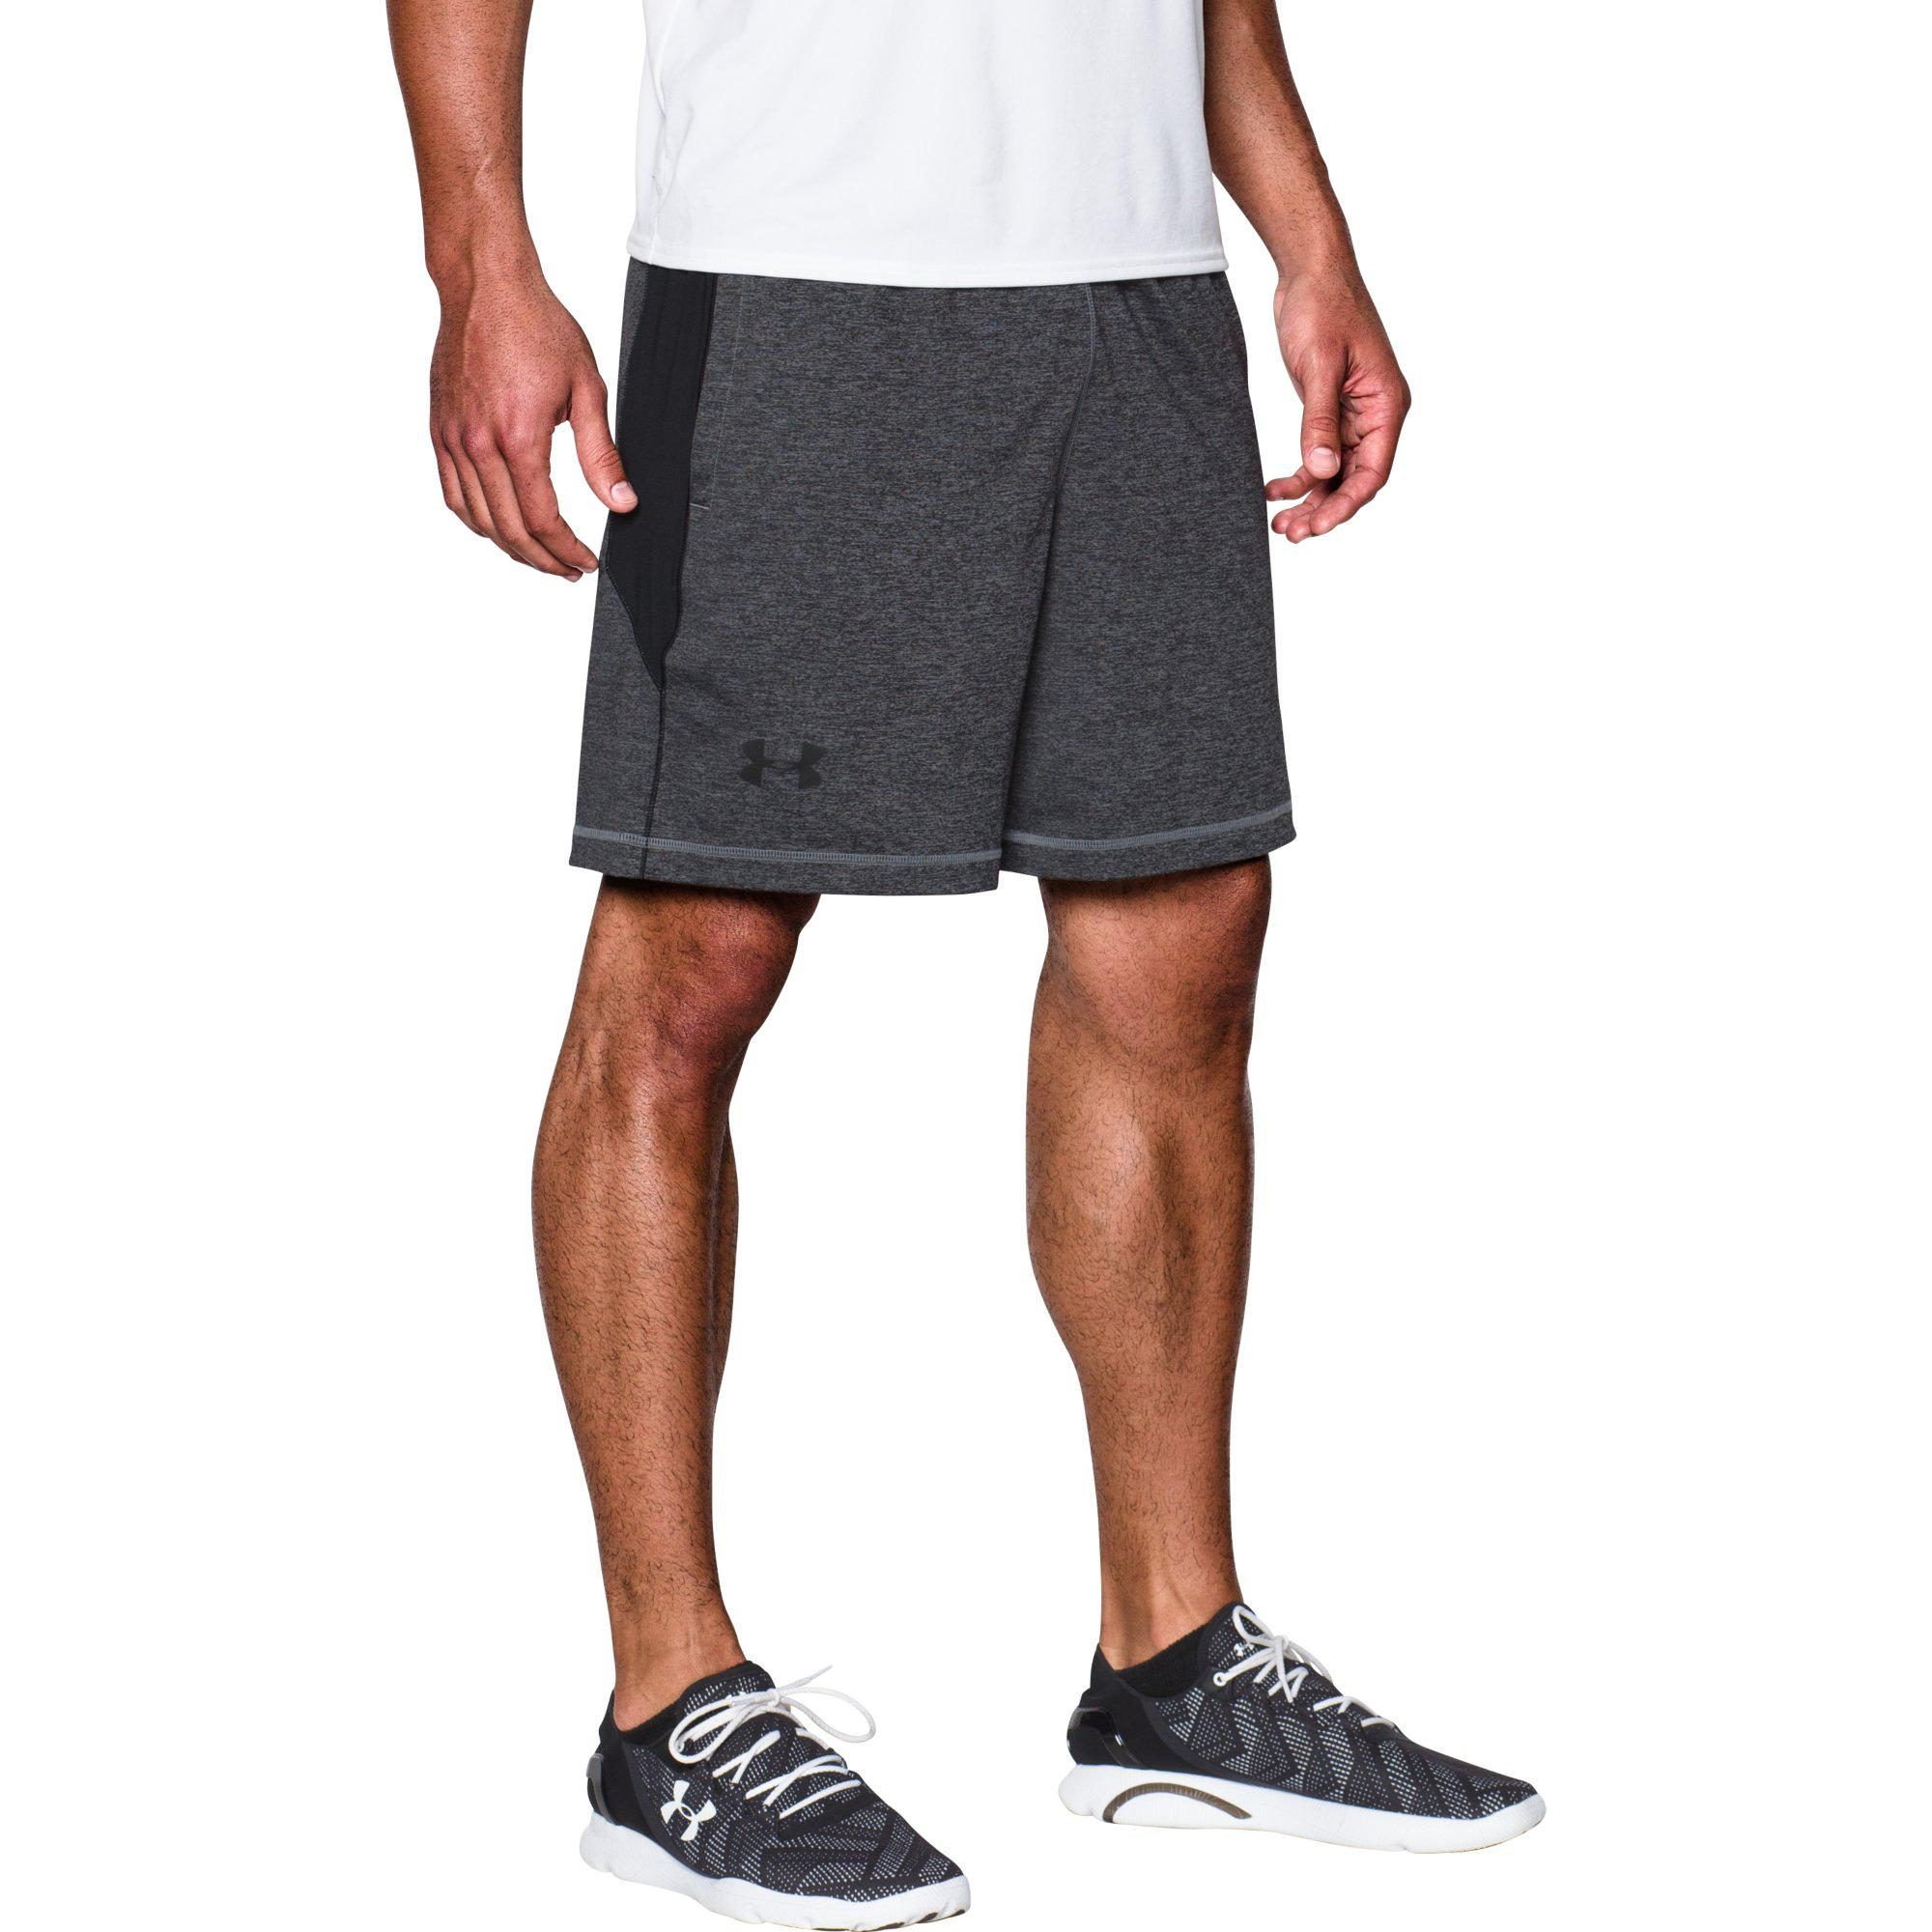 08daaa35b Under Armour Mens Raid 8 Inch Shorts - Steel - Tennisnuts.com